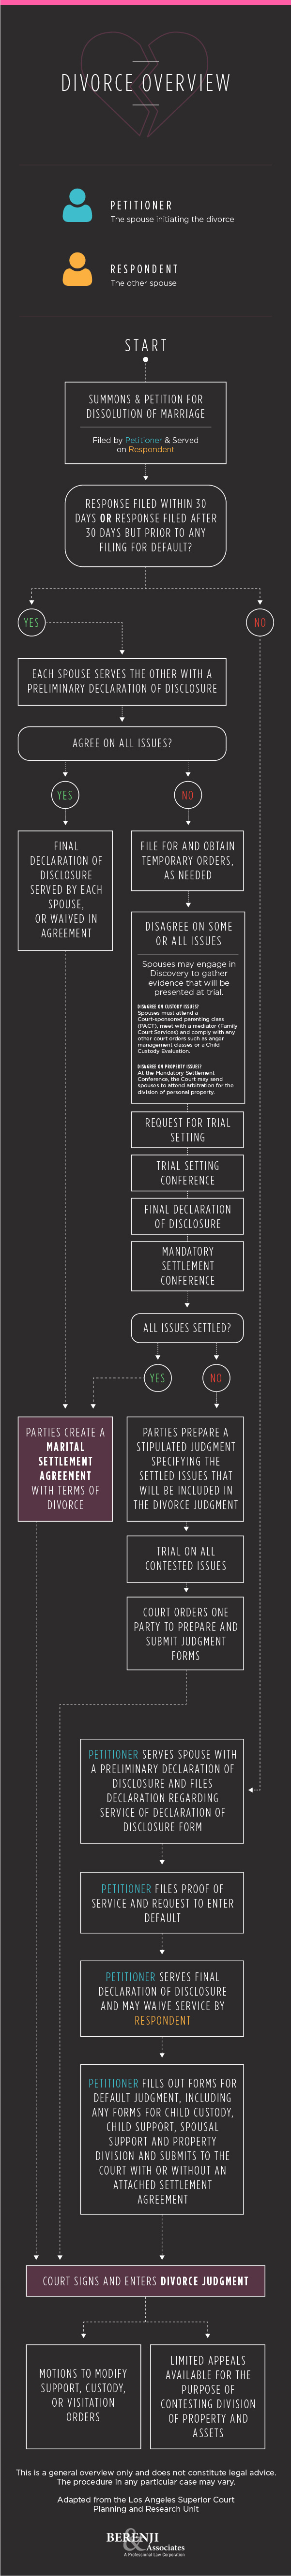 divorce-overview-infographic